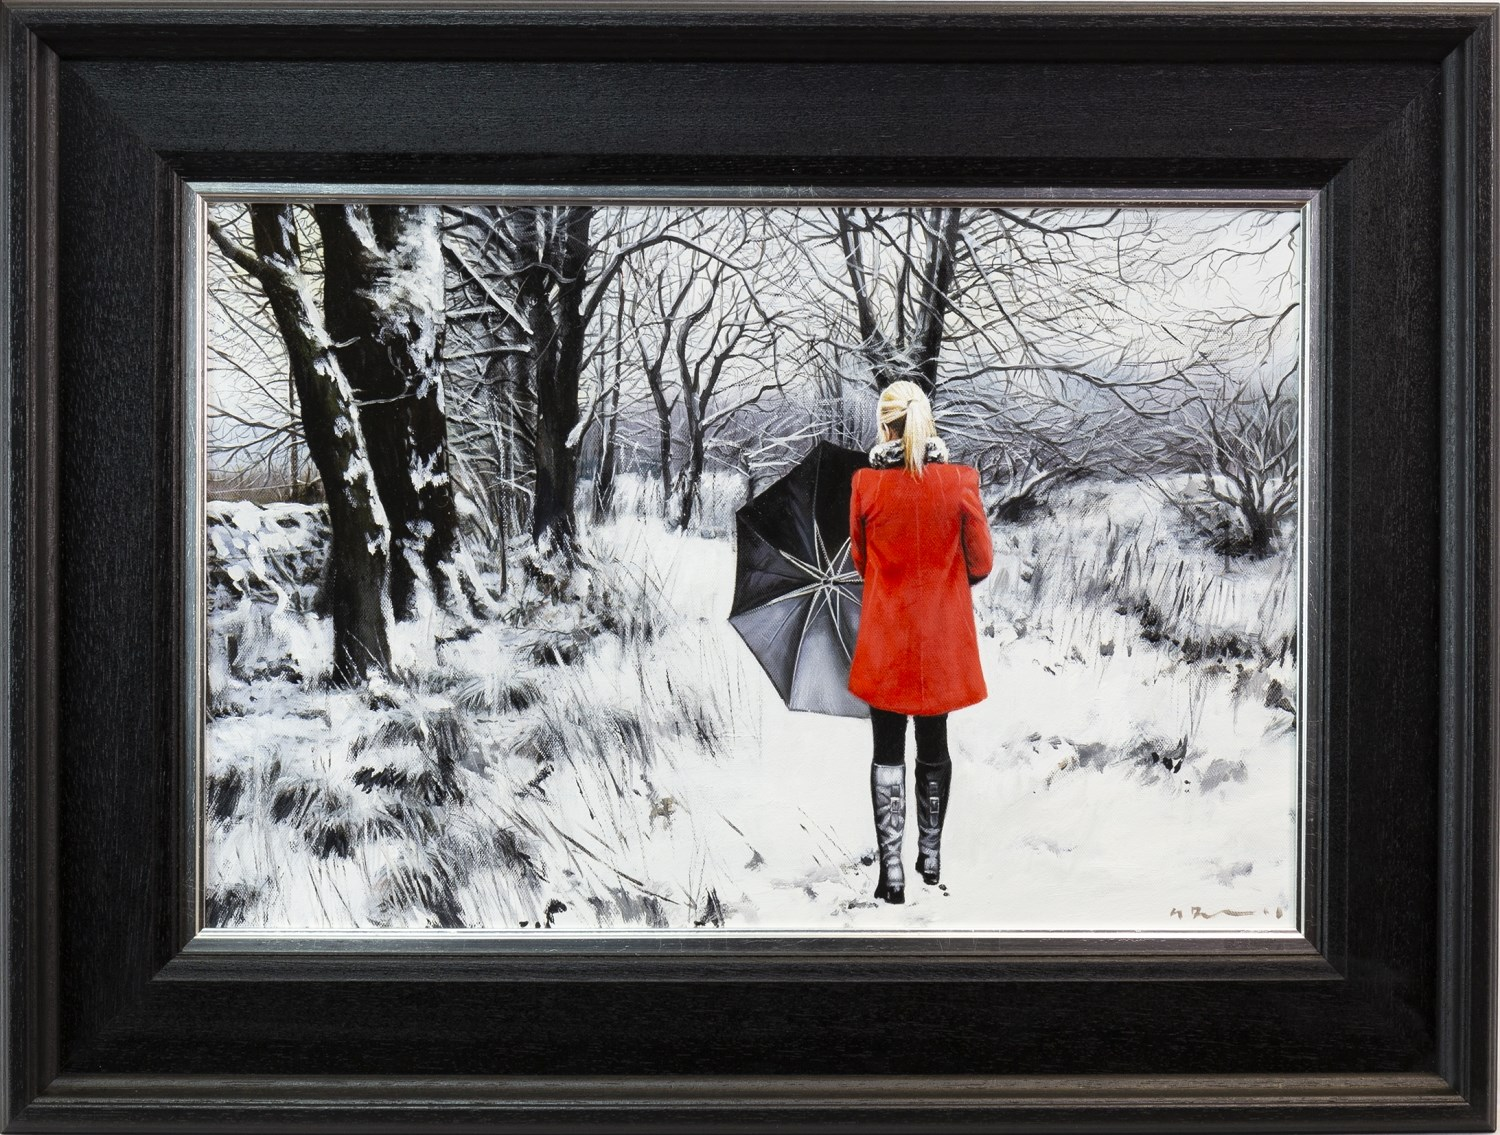 Lot 46 - THE WINTER PATH, AN OIL ON CANVAS BY GERARD BURNS